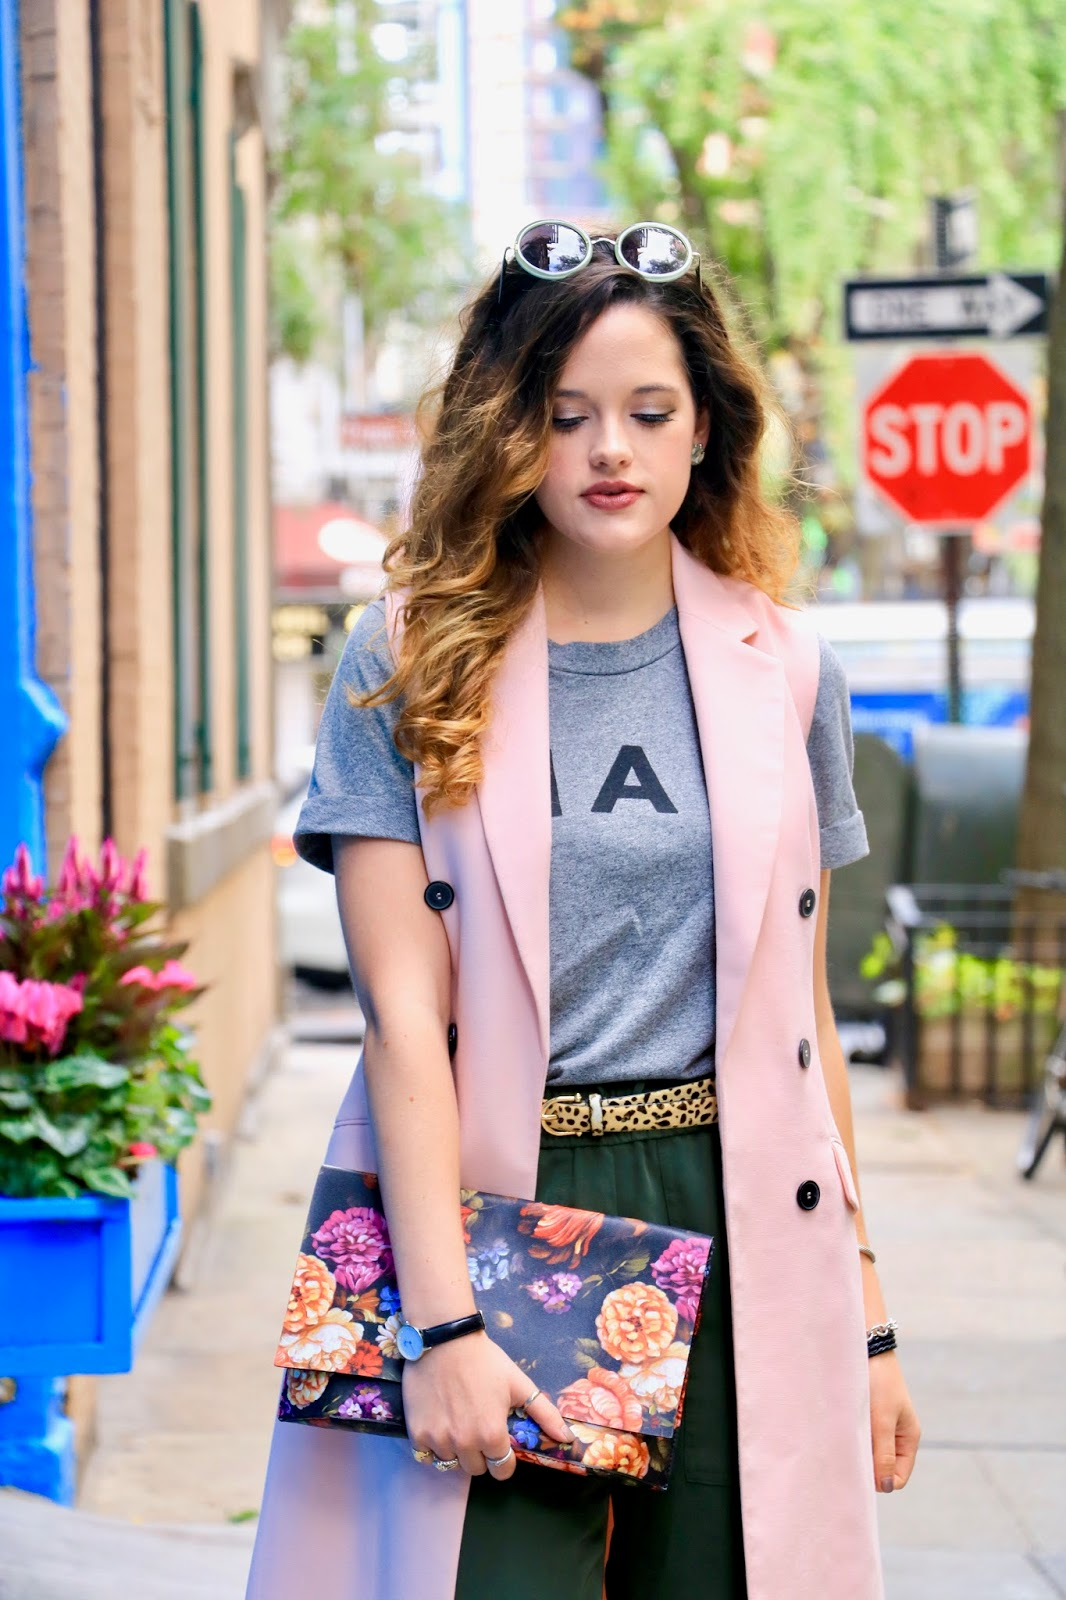 Nyc fashion blogger Kathleen Harper of Kat's Fashion Fix outfit